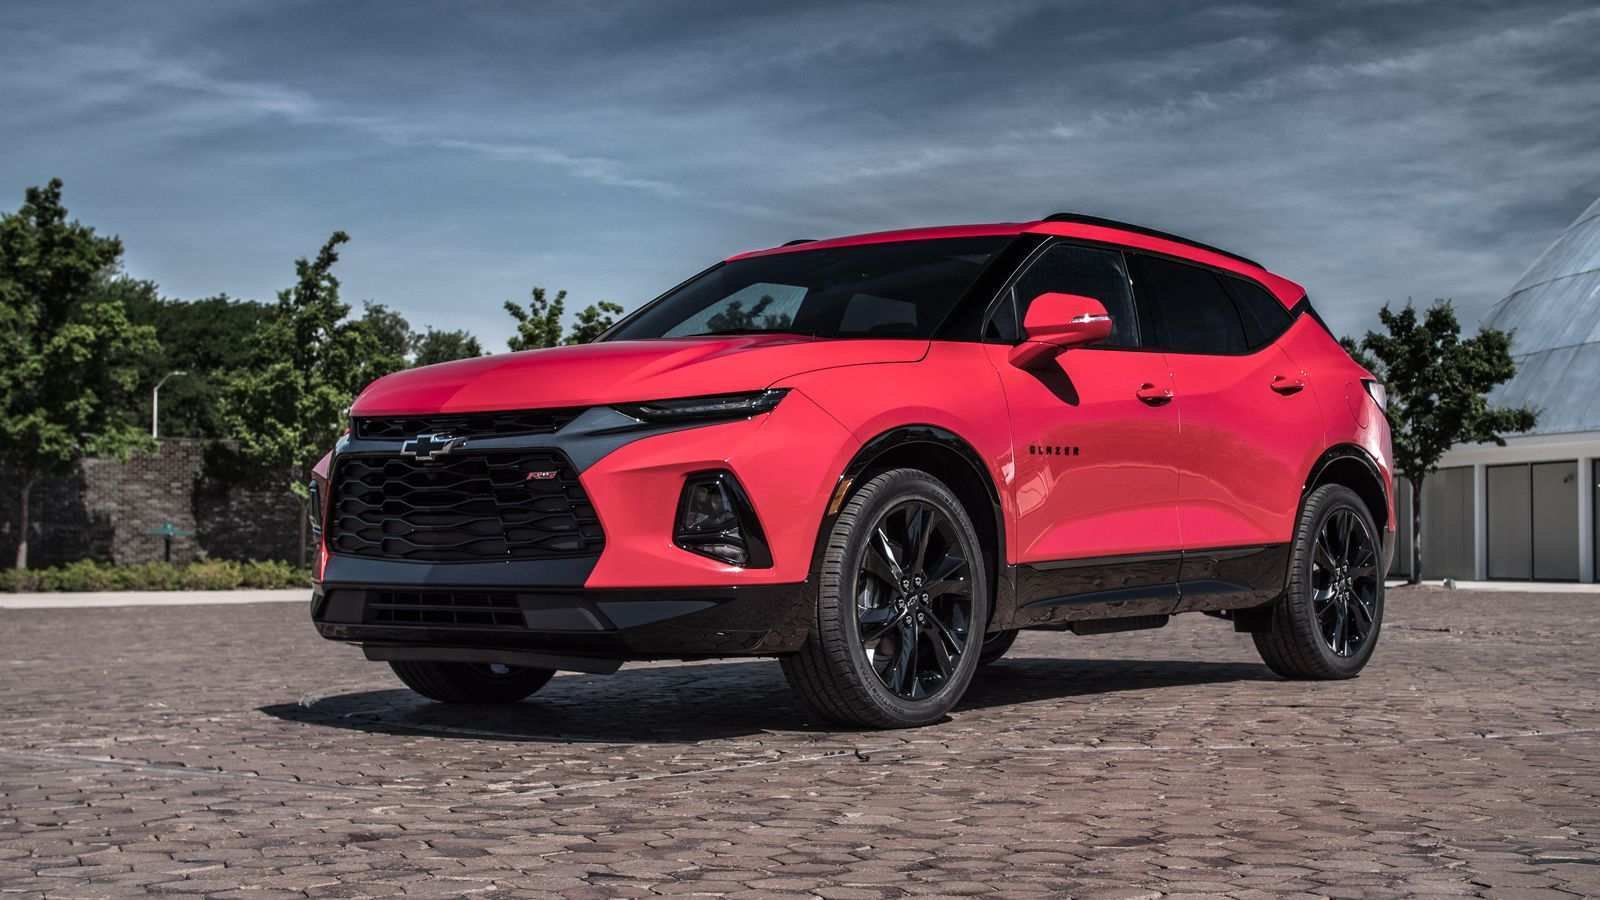 79 All New 2019 Chevrolet Blazer Release Date History by 2019 Chevrolet Blazer Release Date